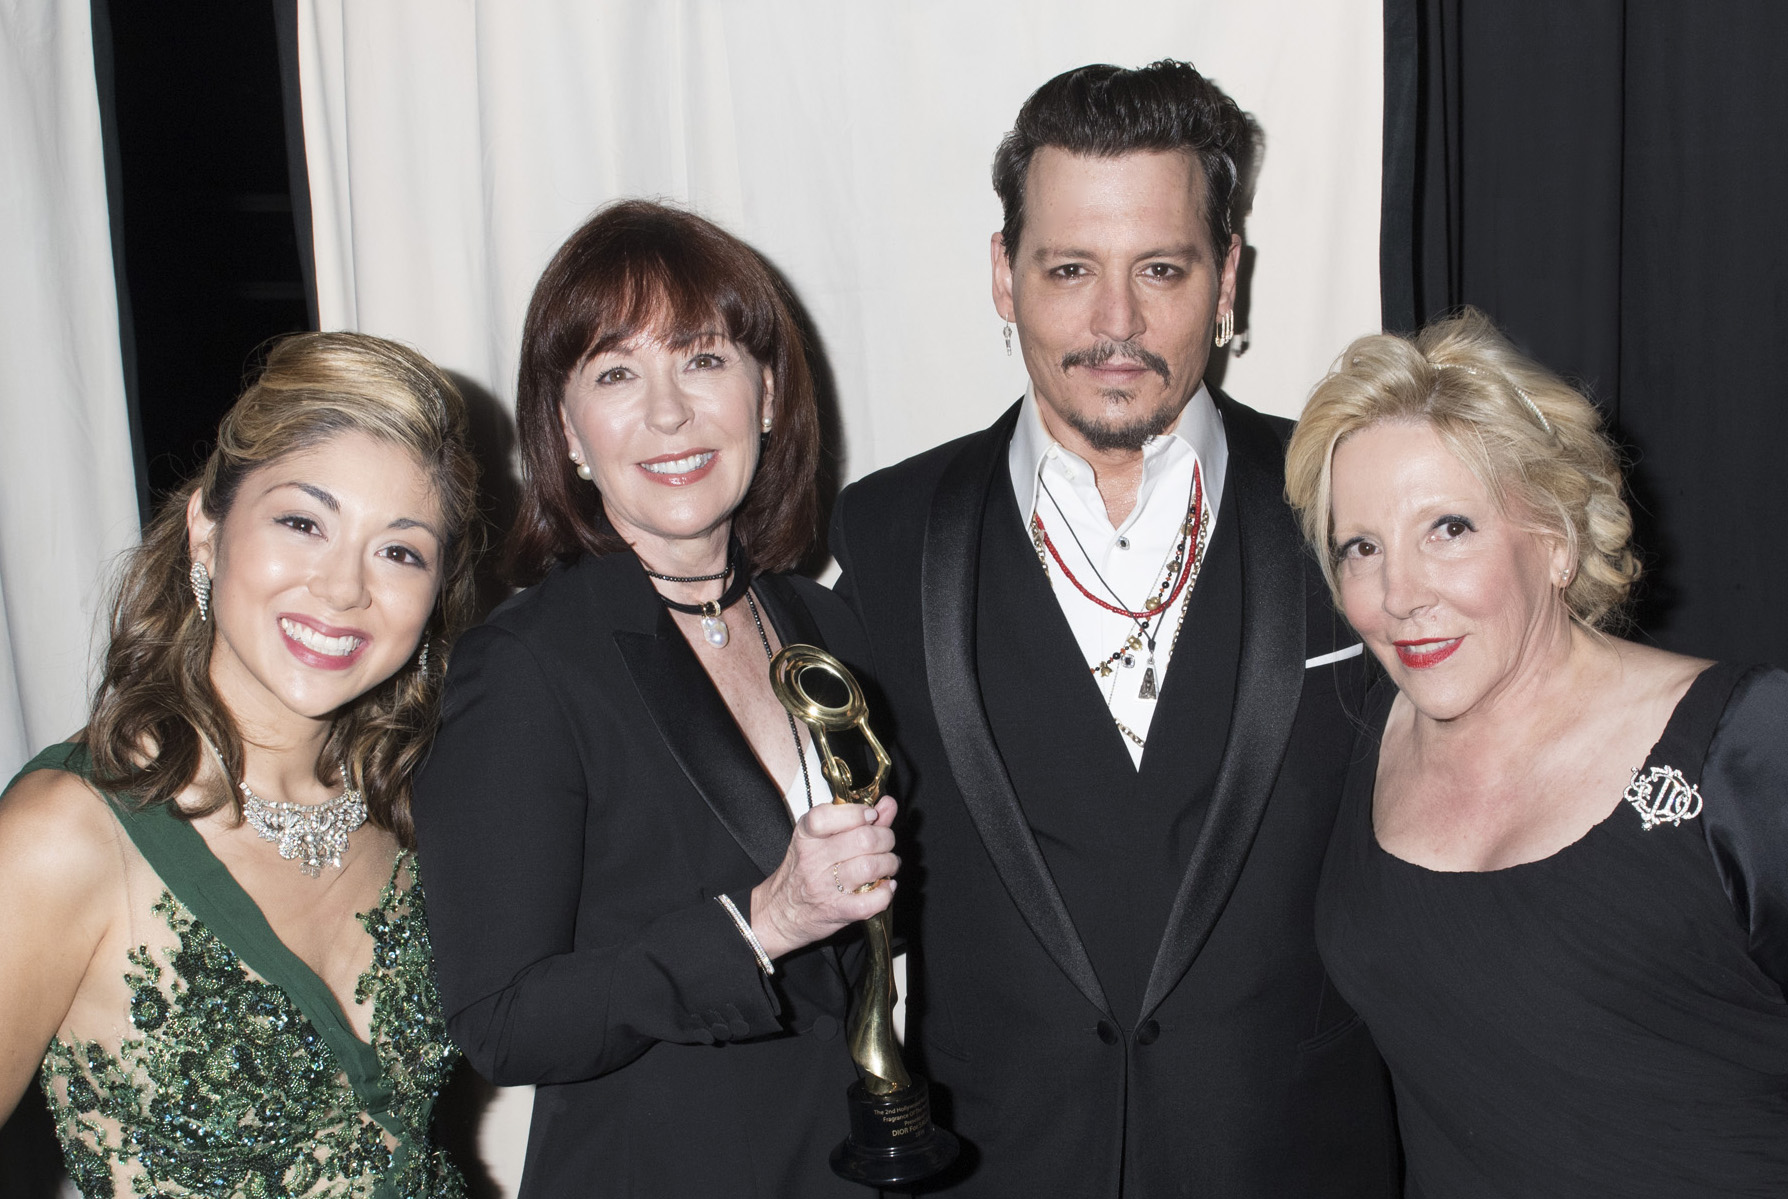 Pamela Price, Pamela Baxter, Johnny Depp, Michele Elyzabeth - Hollywood Beauty Awards - LATF